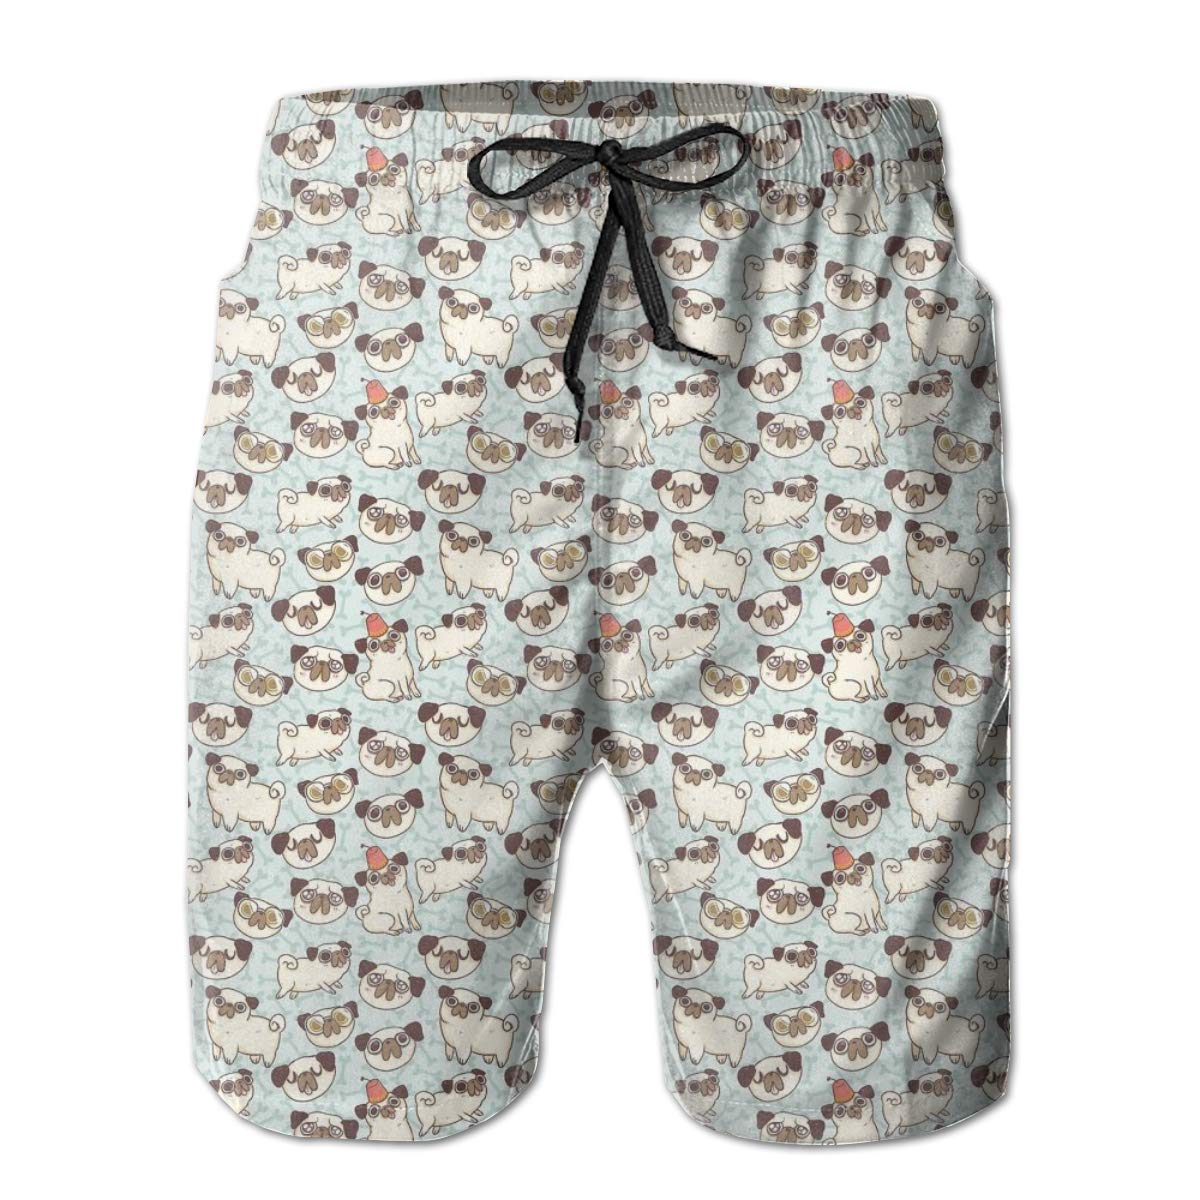 HZamora/_H Men Lovely Pug Dogs Summer Breathable Quick-Drying Swim Trunks Beach Shorts Cargo Shorts